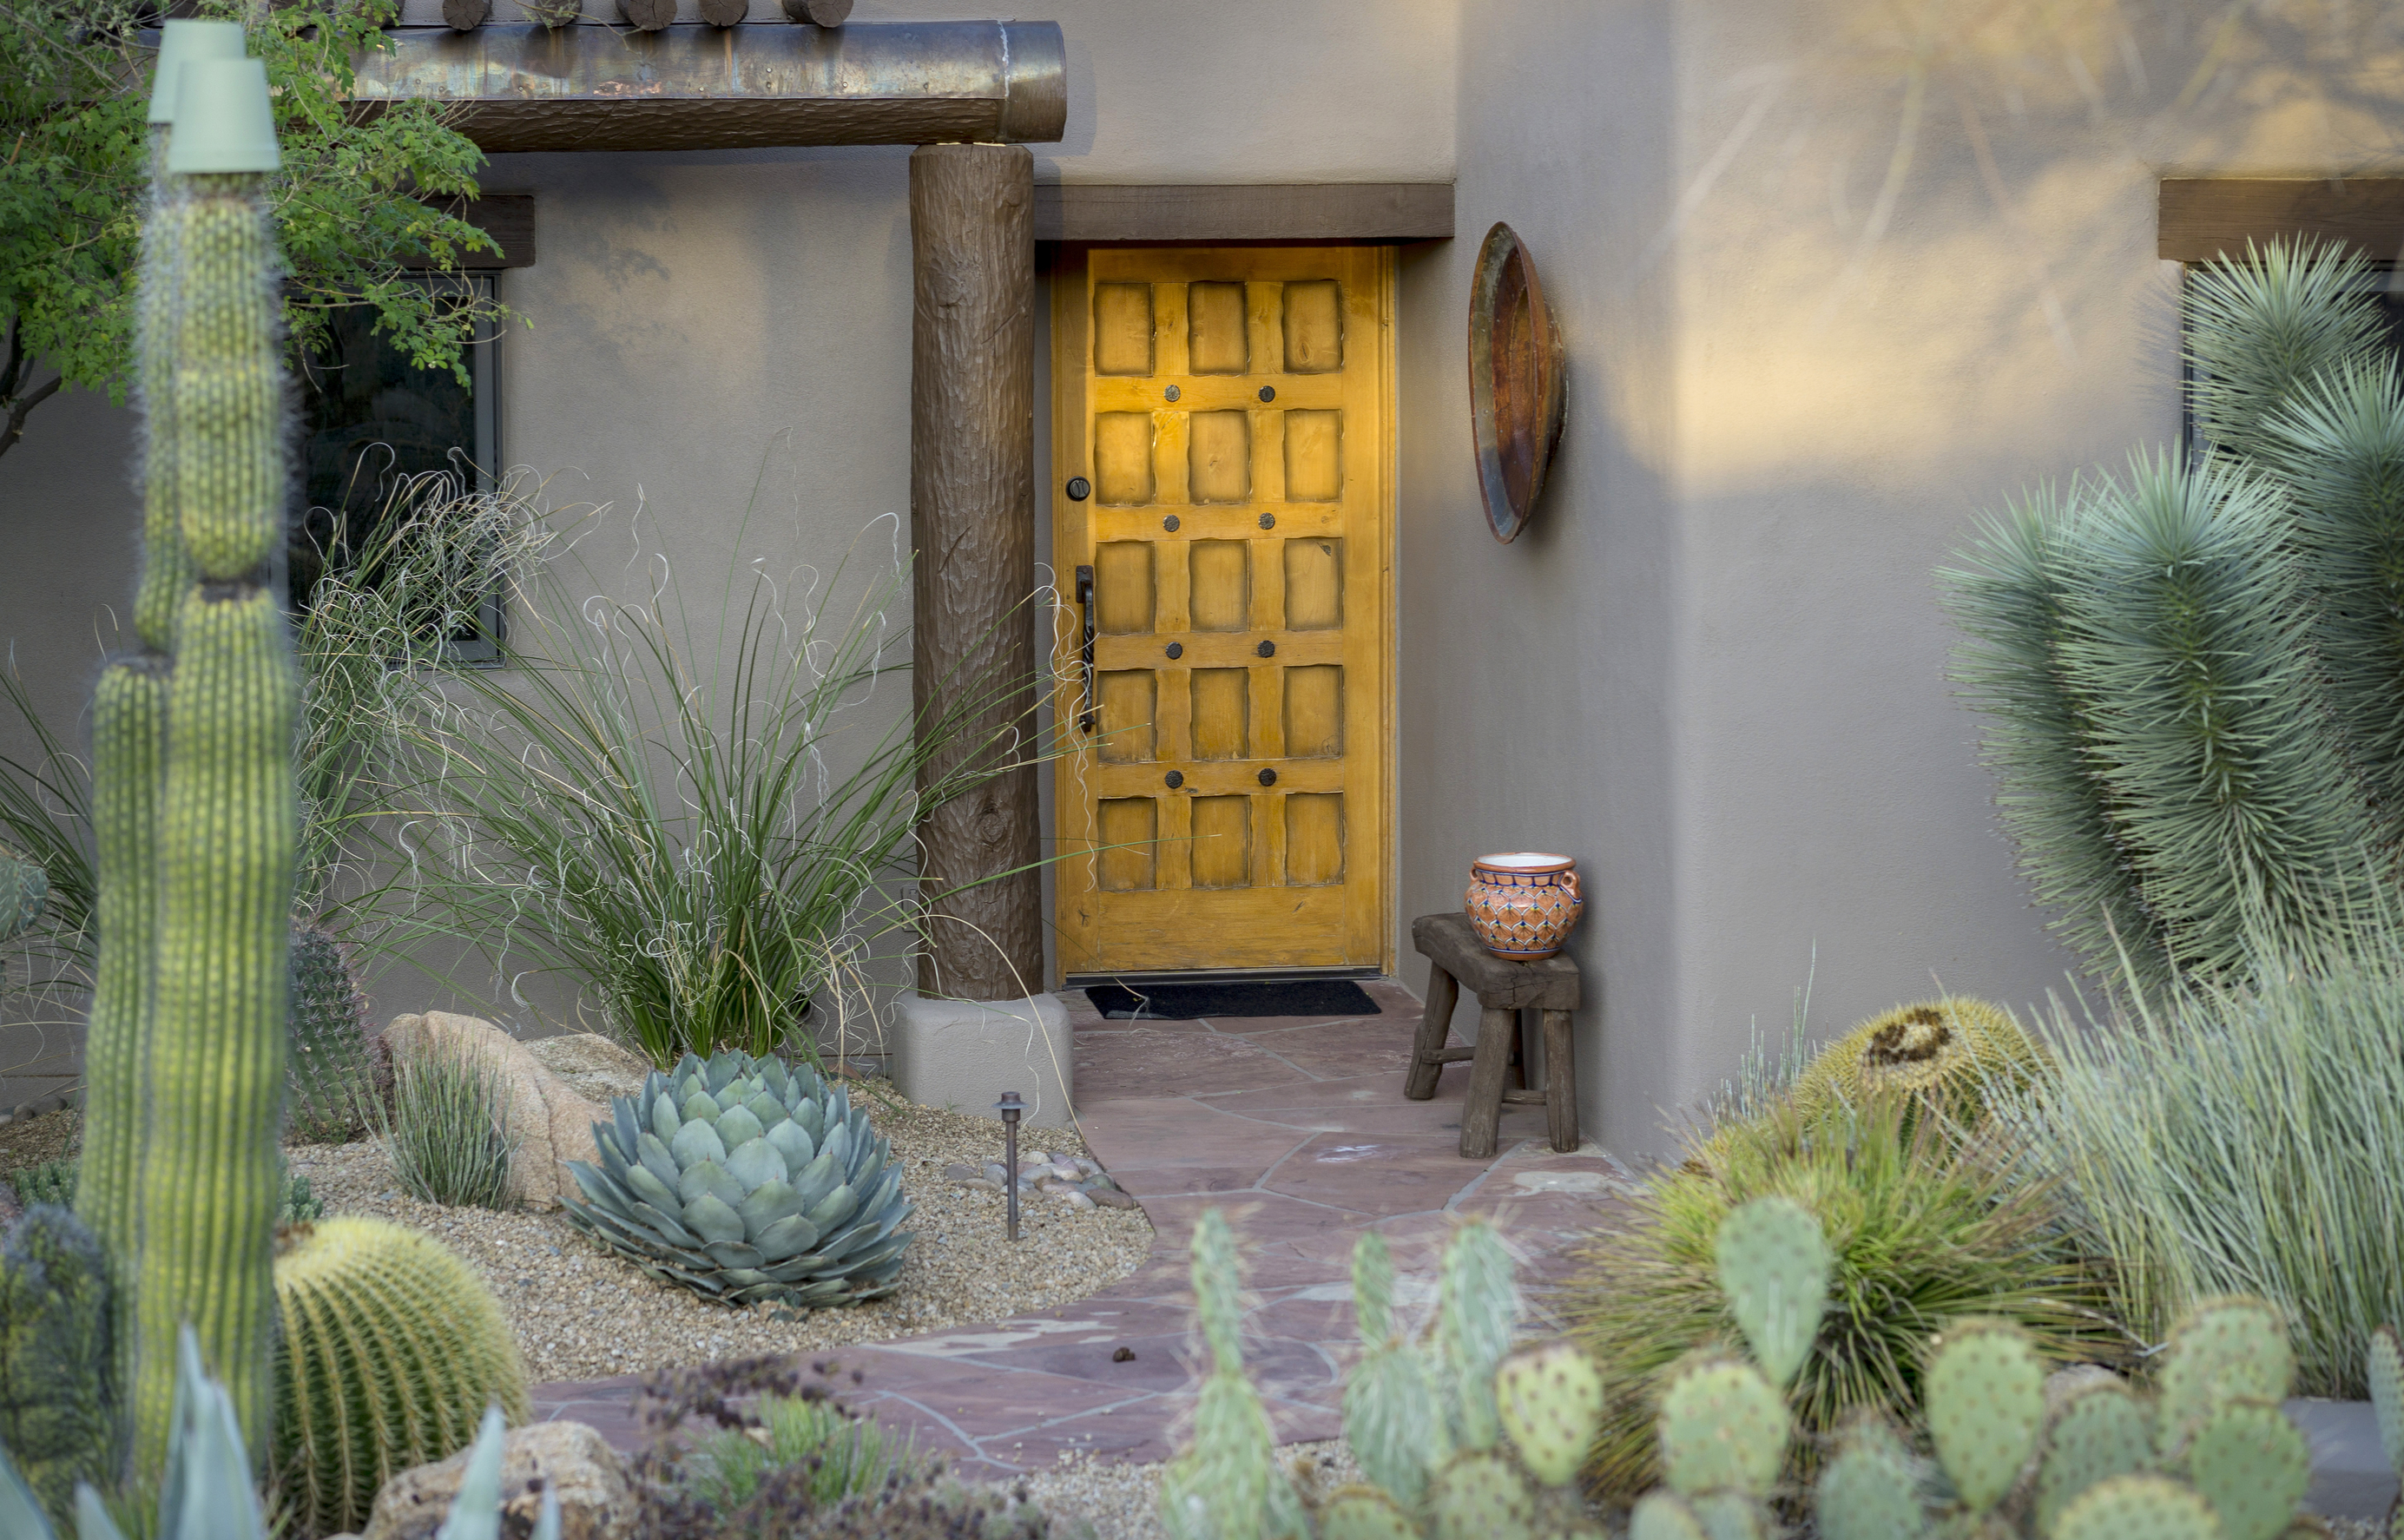 Creative Solutions for Buying a Home